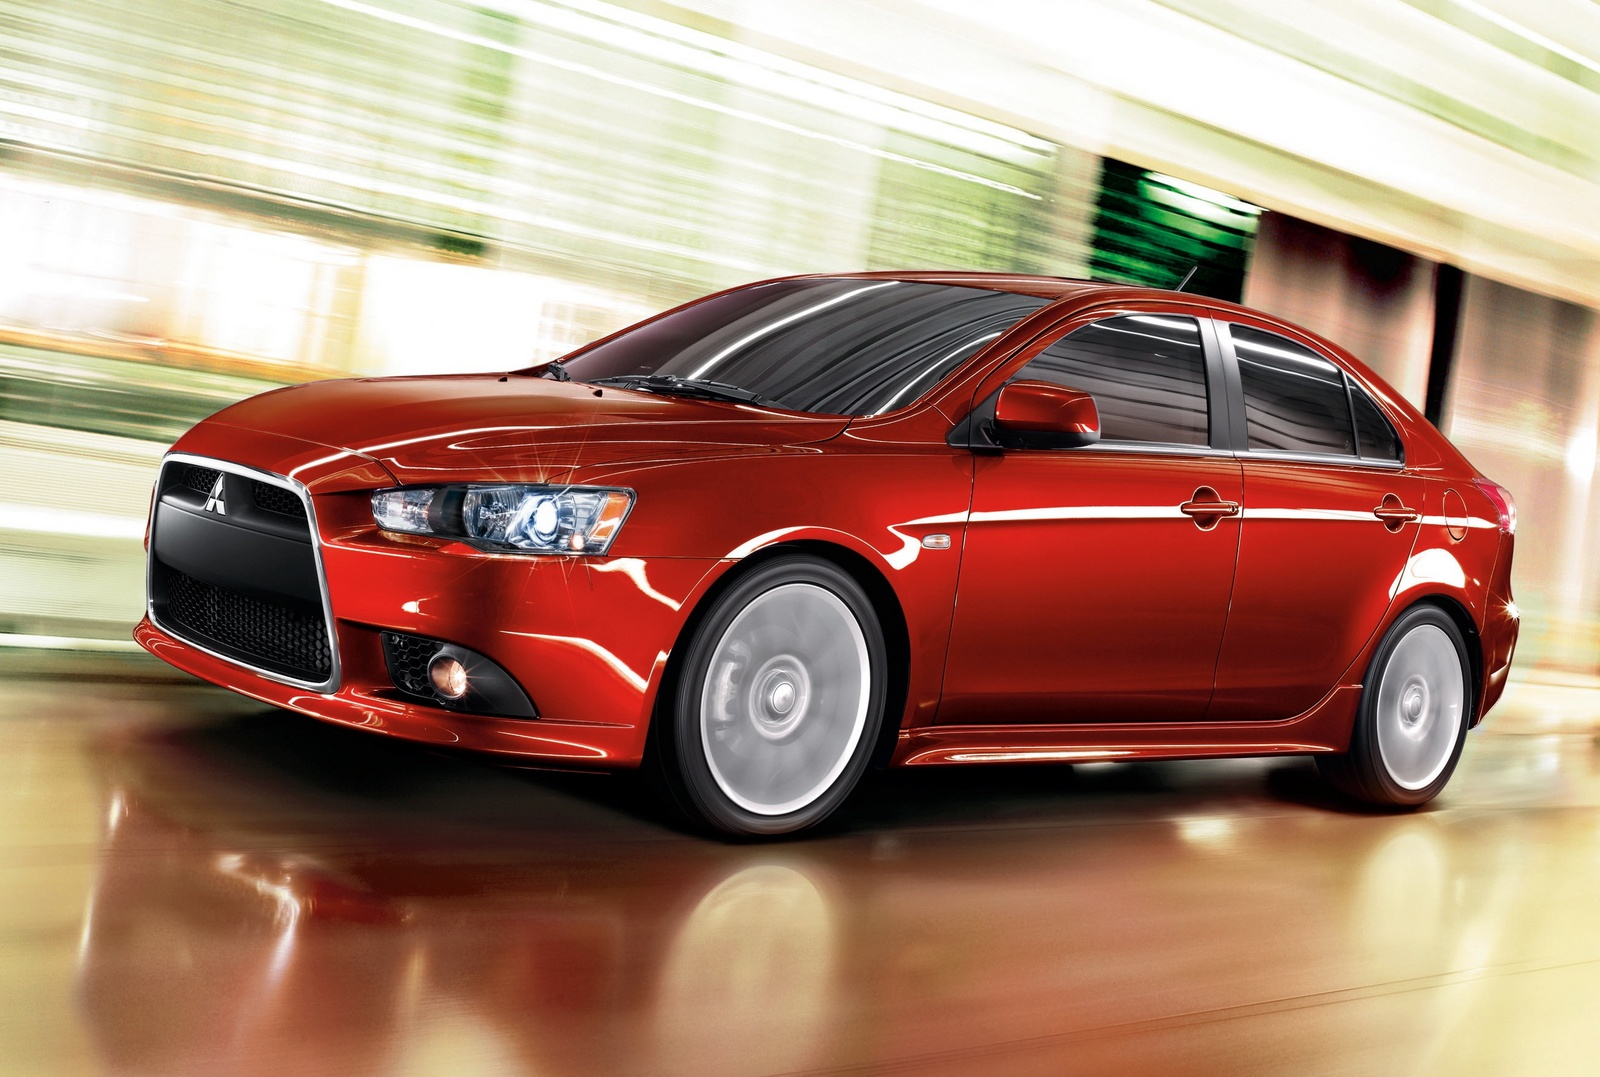 2014 mitsubishi lancer evo 3 view full screen just the facts the